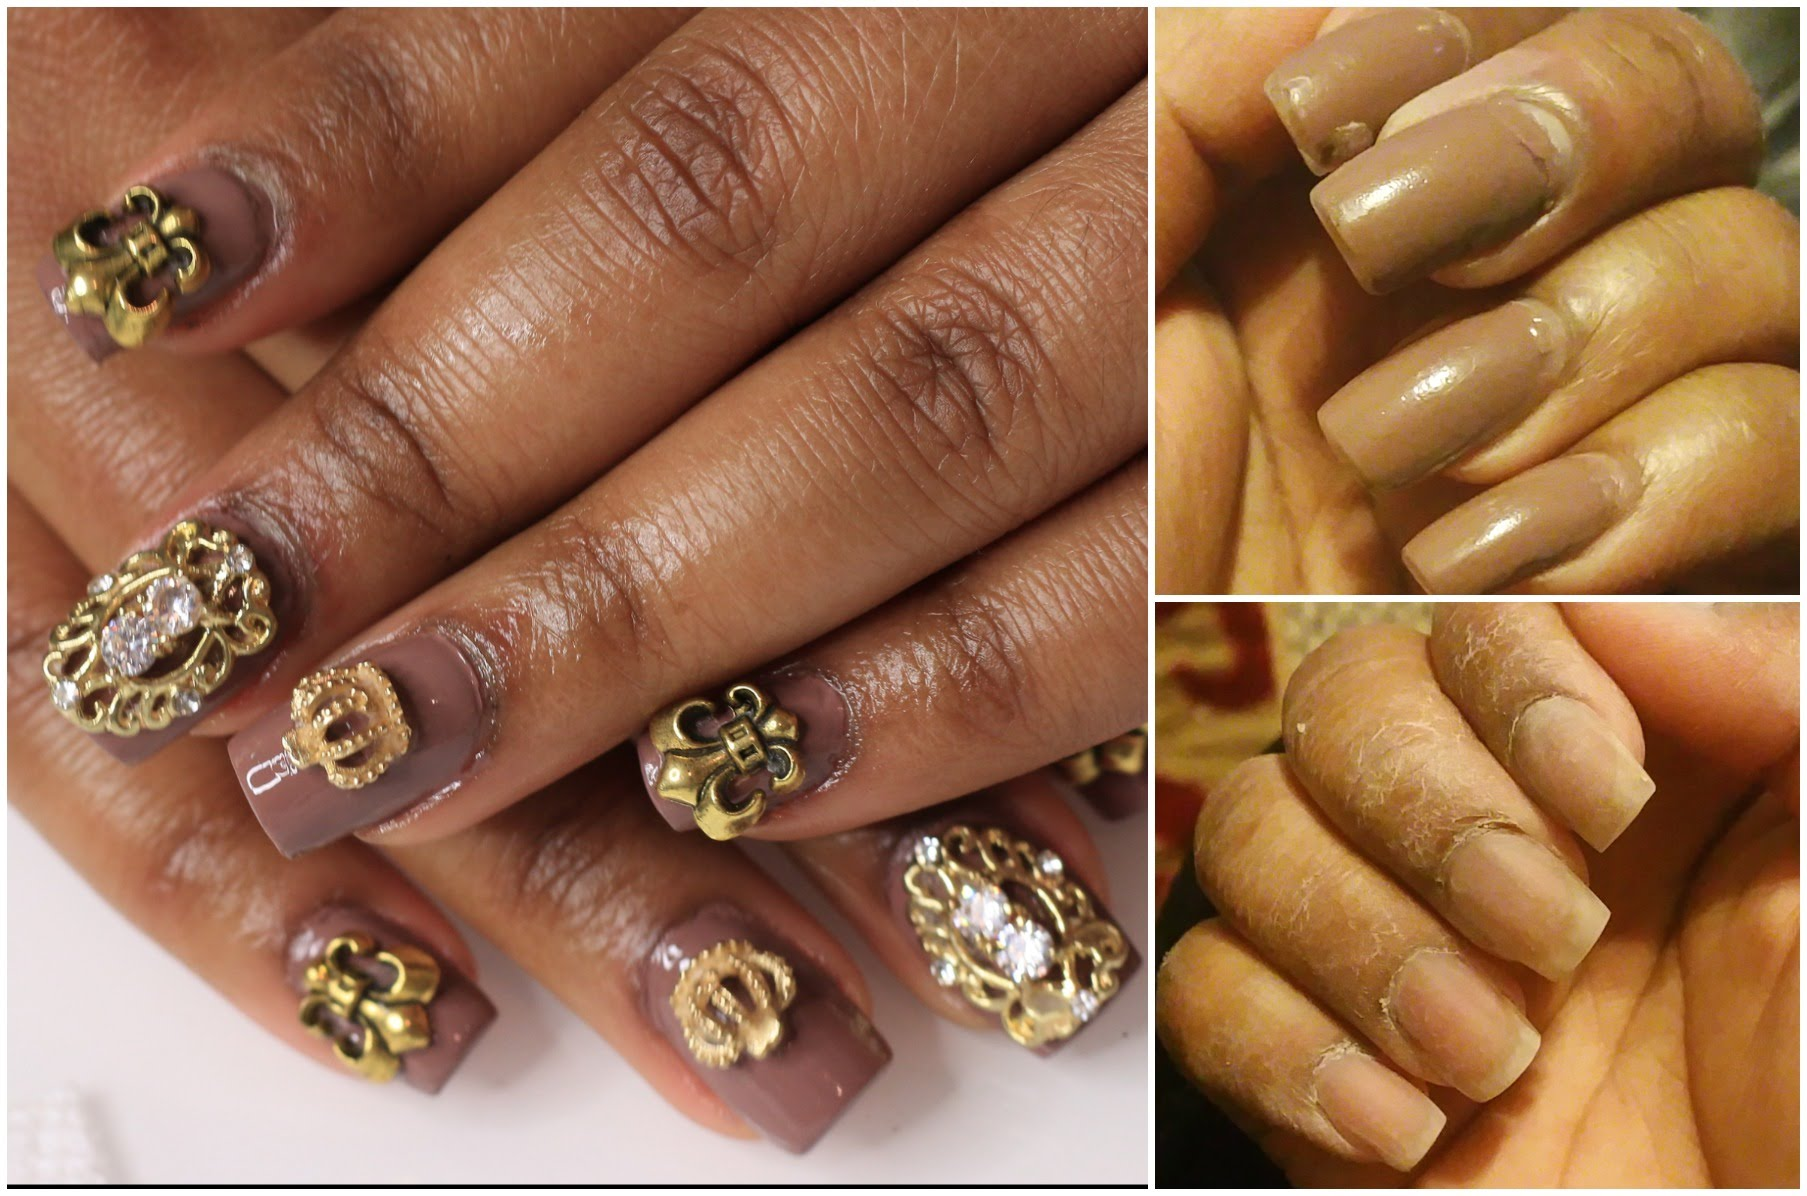 Free photo: Nail jewelry - People, Performance, Nail - Free Download ...